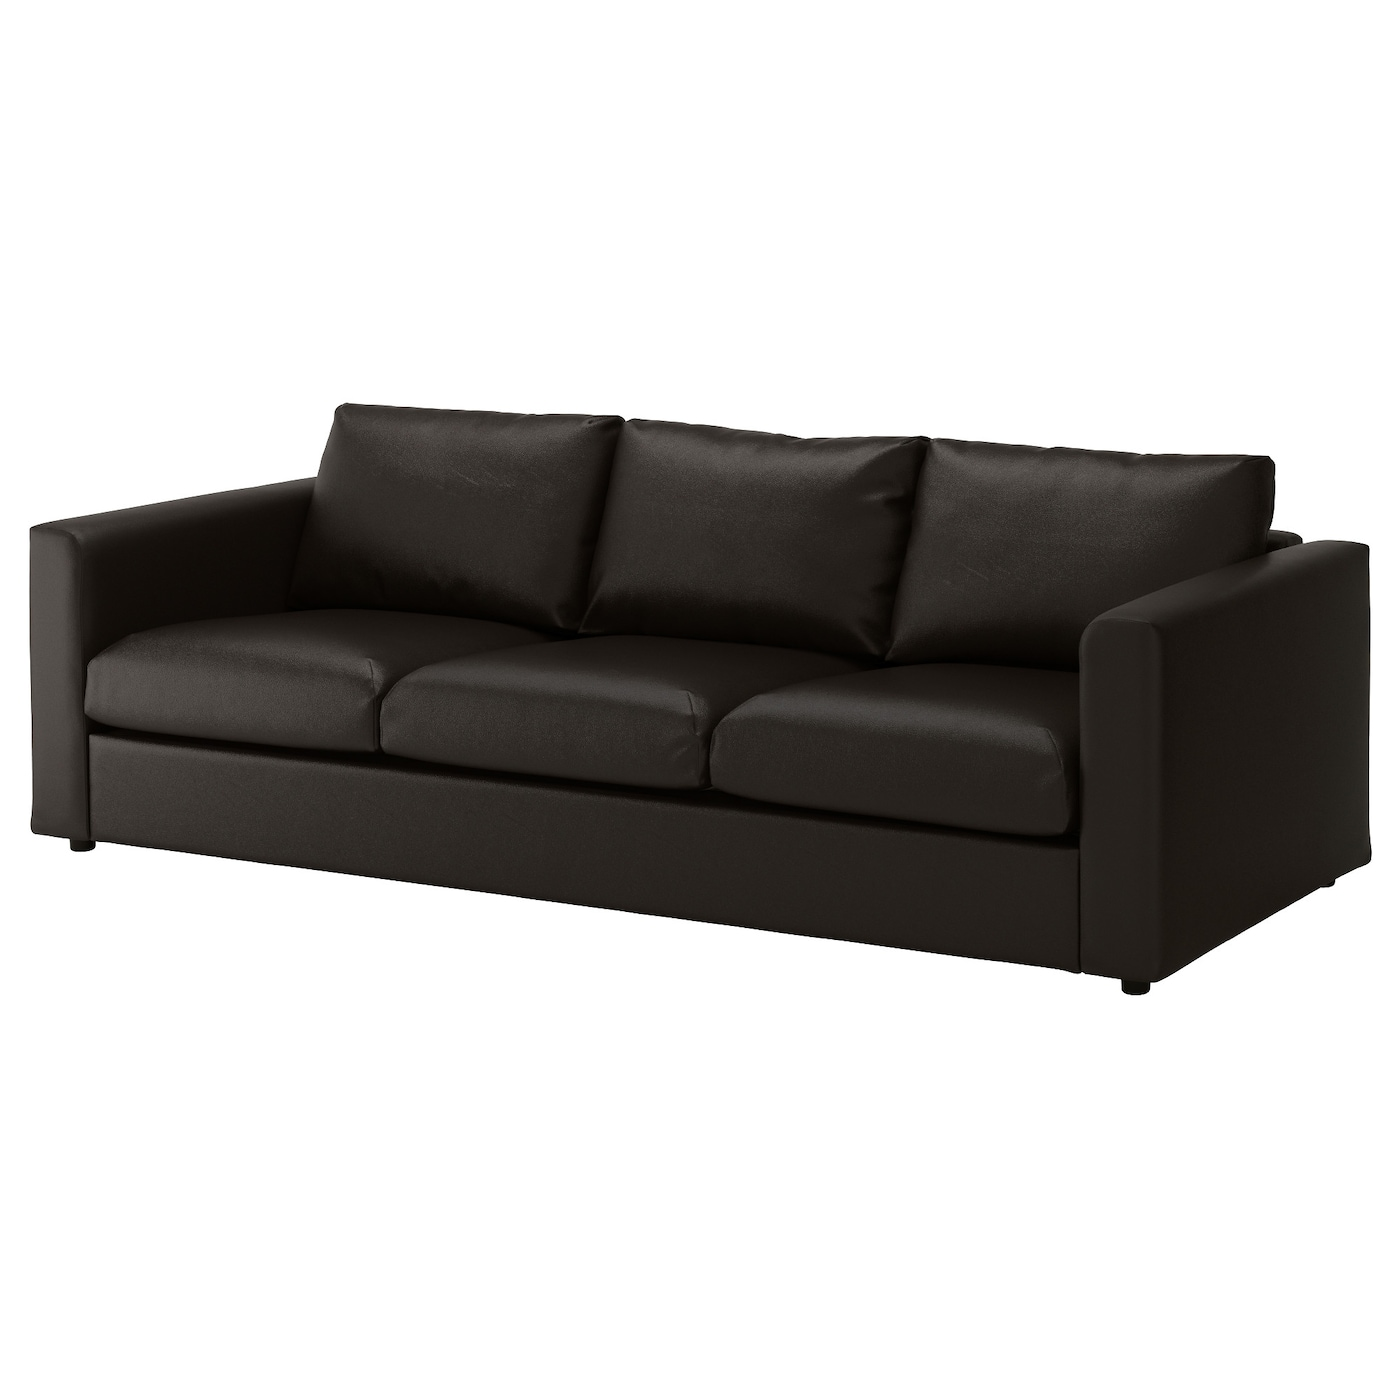 Vimle 3 seat sofa farsta black ikea for Black fabric couches